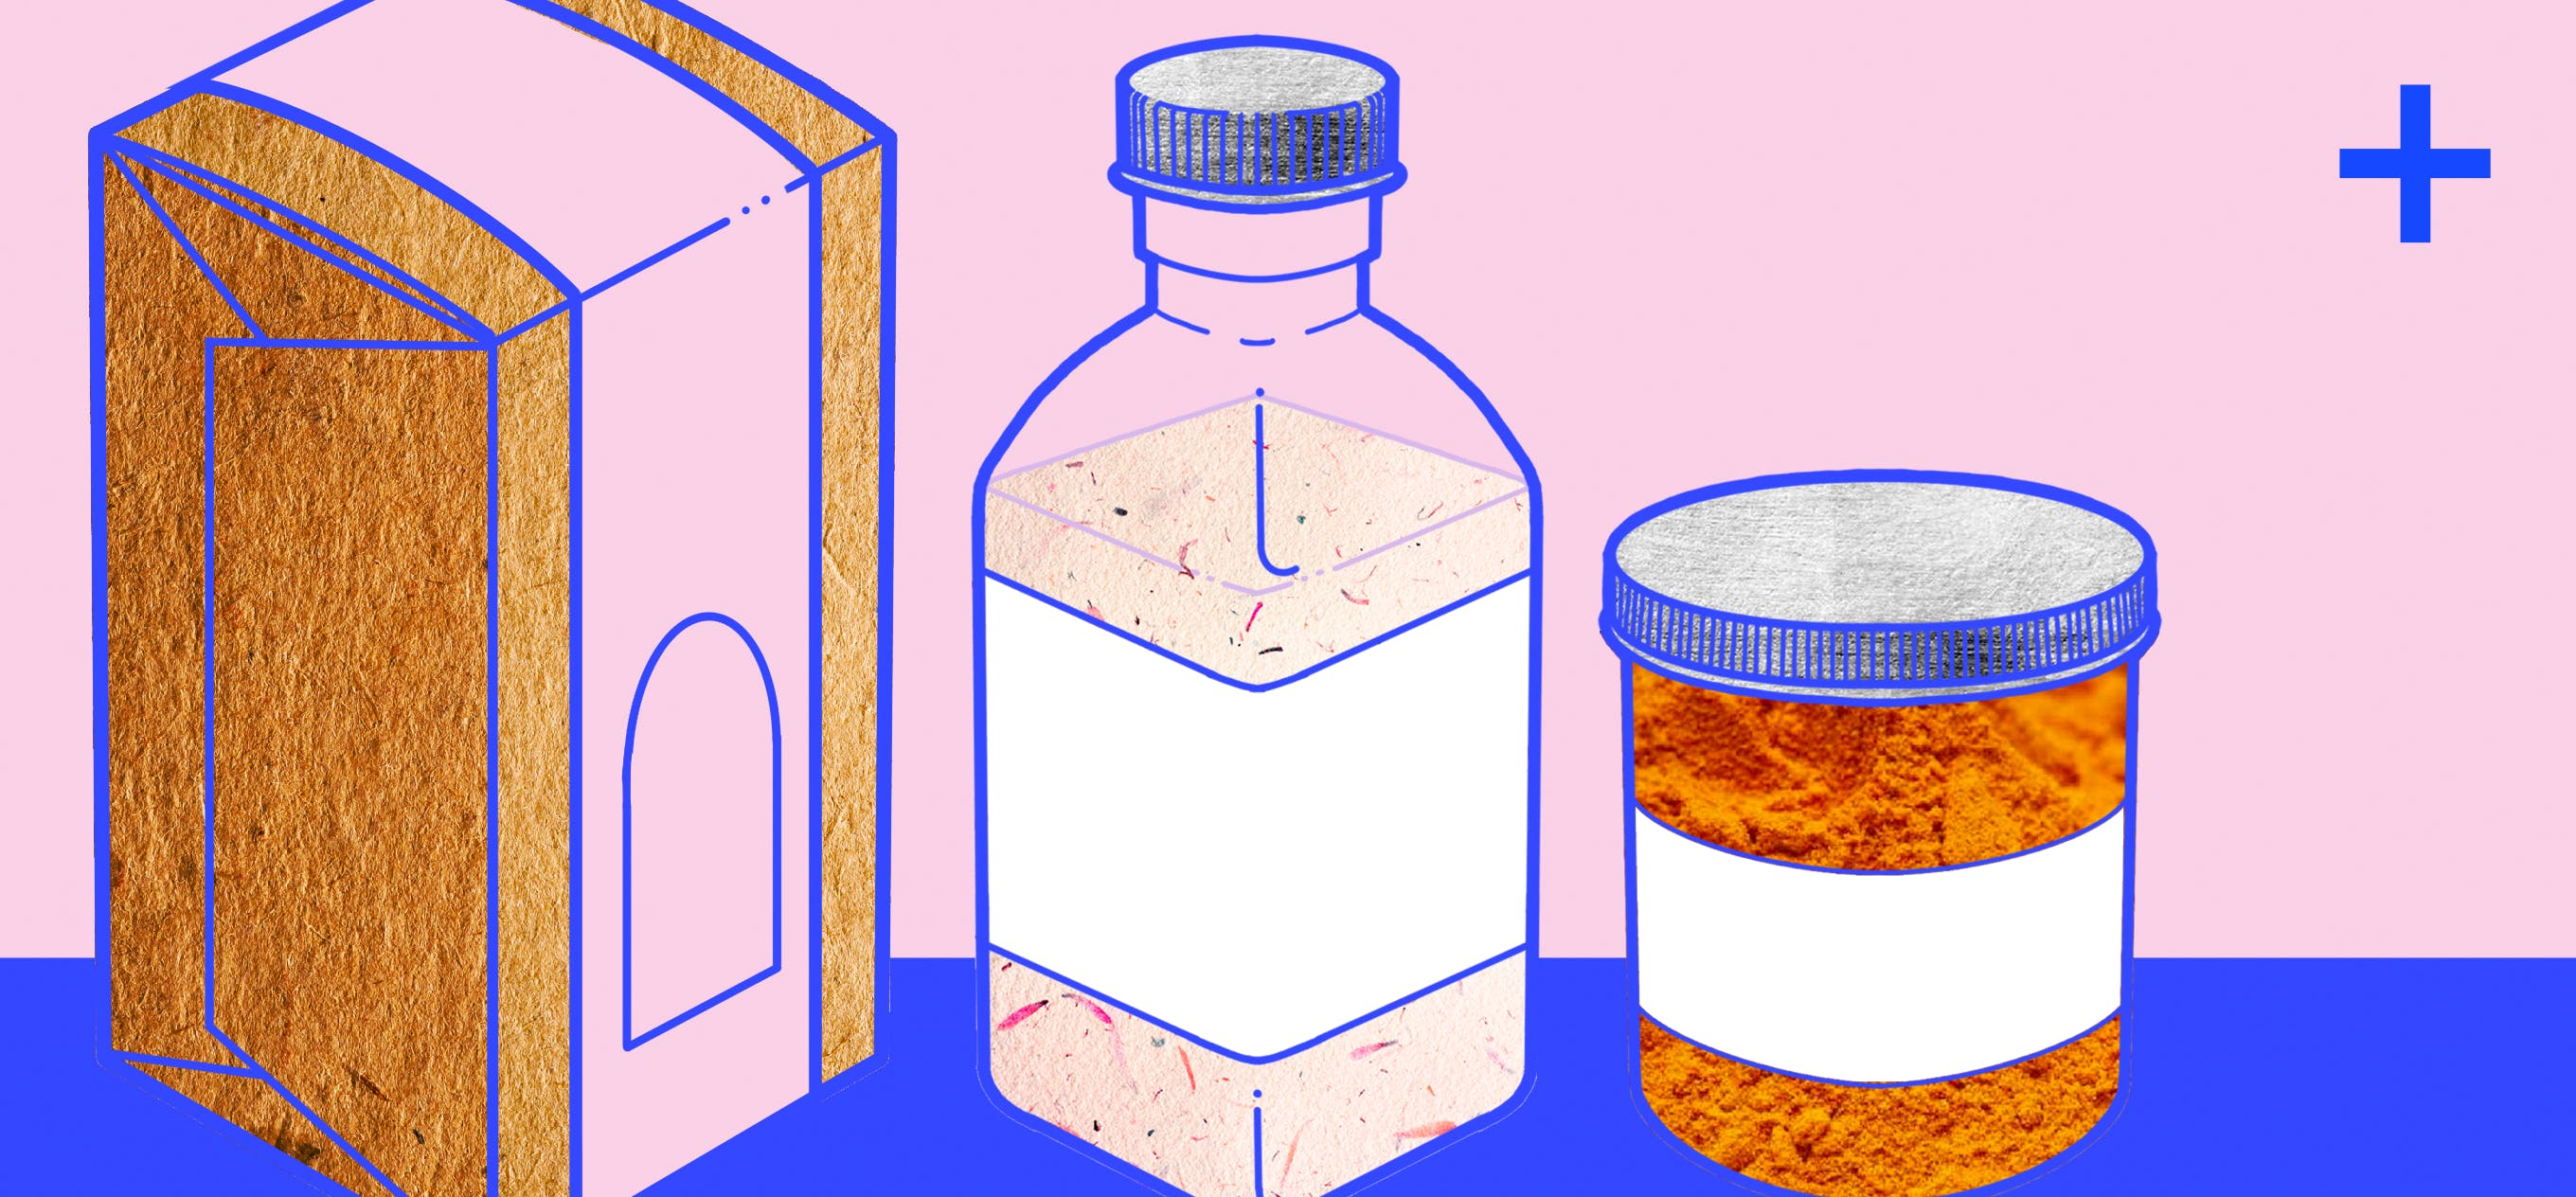 Labels — by Meher Varma; Illustrations by Pia Alize Hazarika